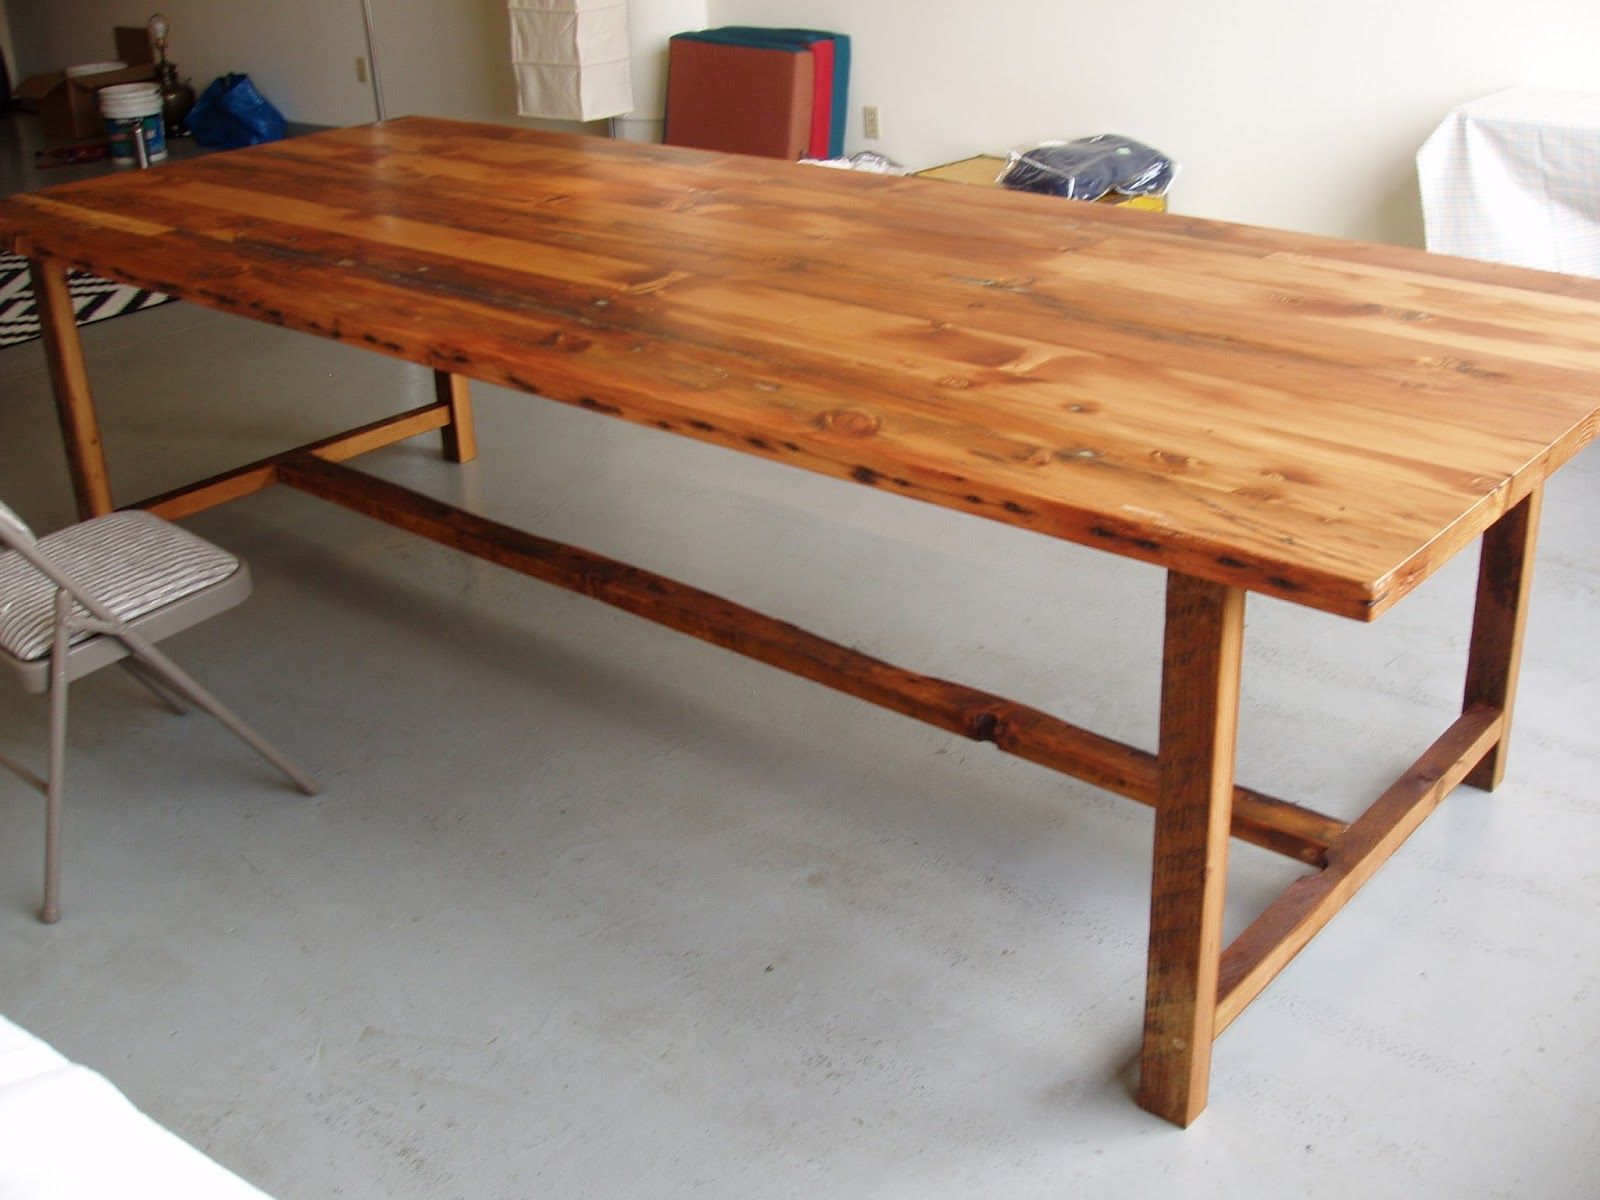 10 Foot Long By 48 Inch Wide Wood Dining Table Custom Wood